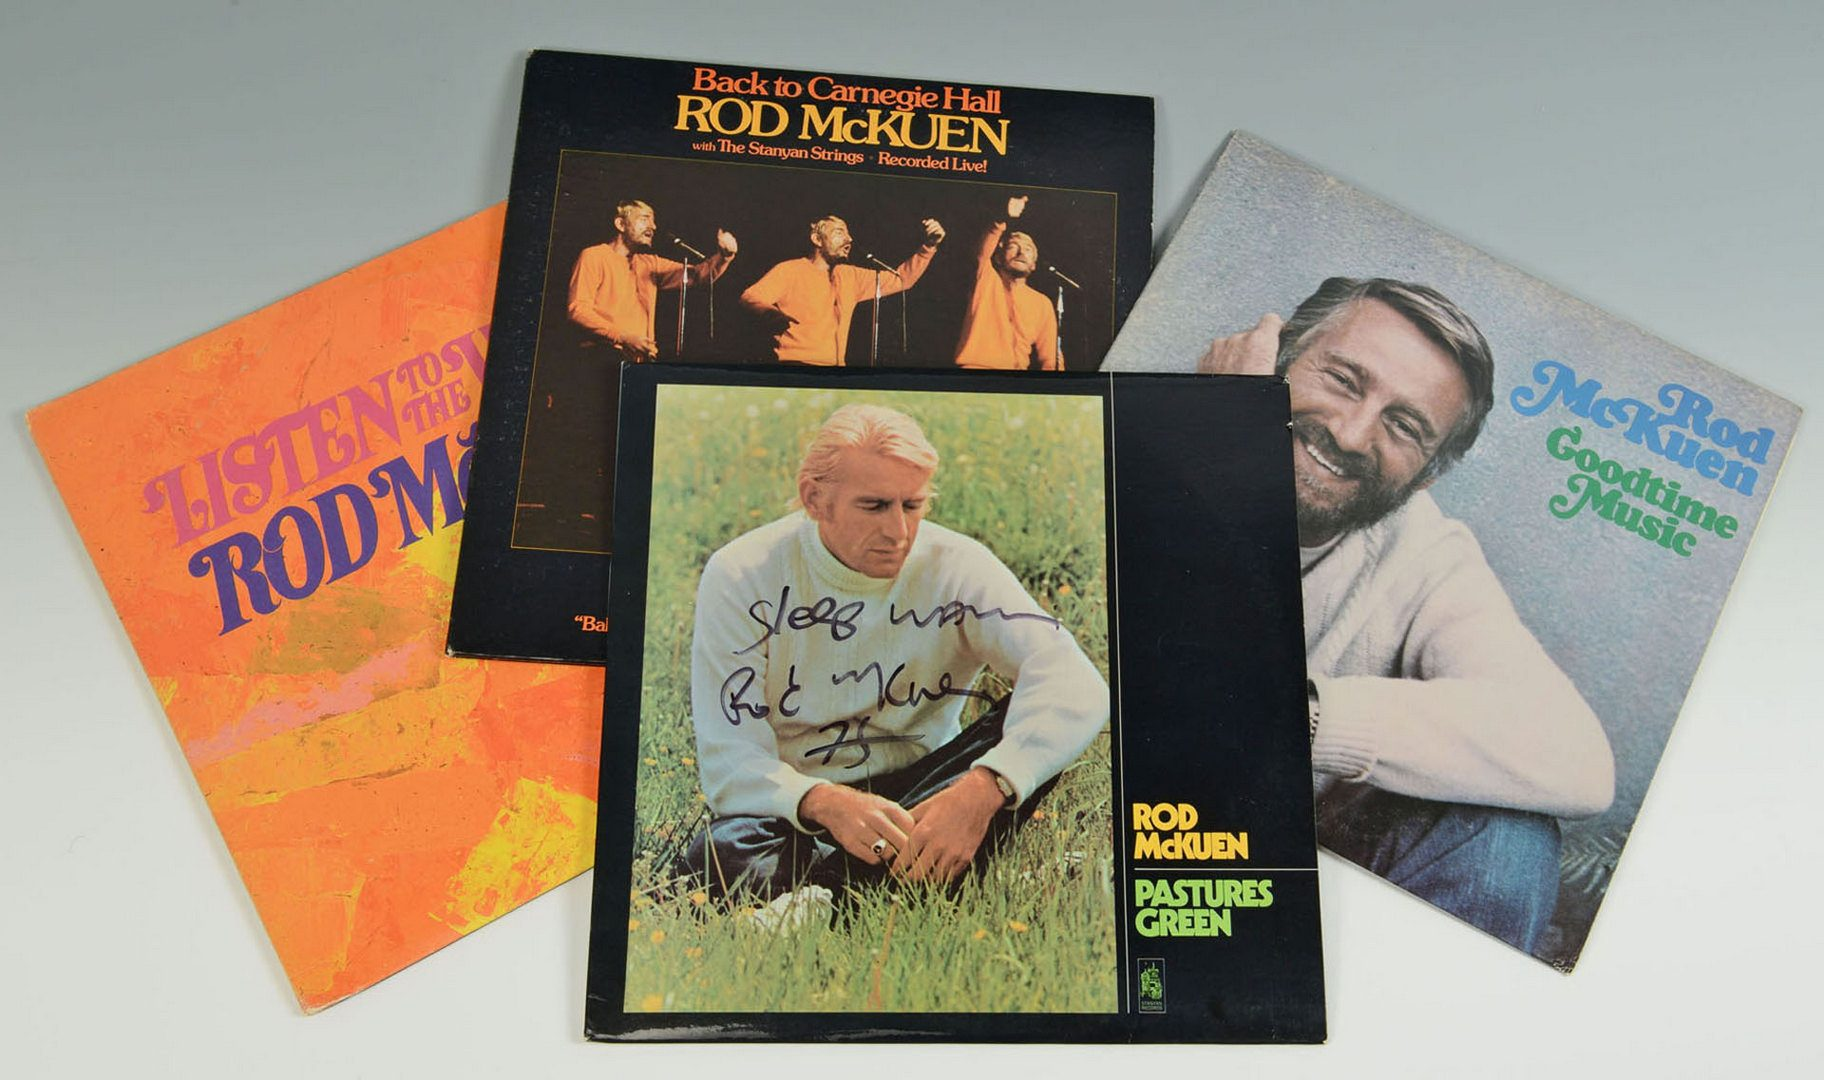 Lot 176: Collection of Rod McKuen albums & first edition bo